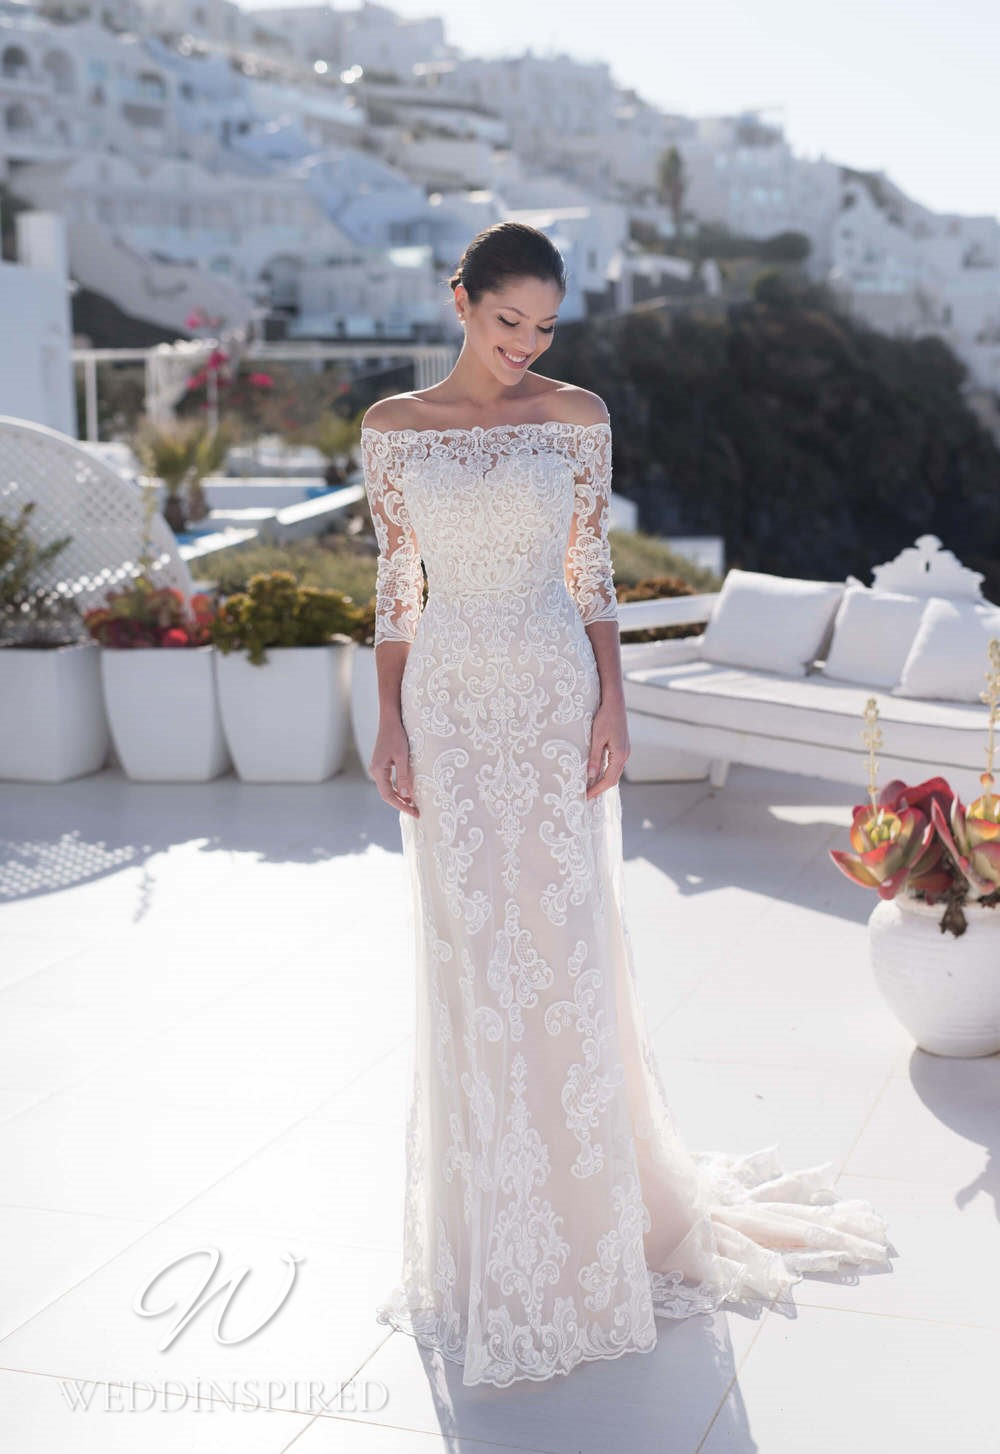 A Blunny 2021 off the shoulder lace sheath wedding dress with 3/4 sleeves